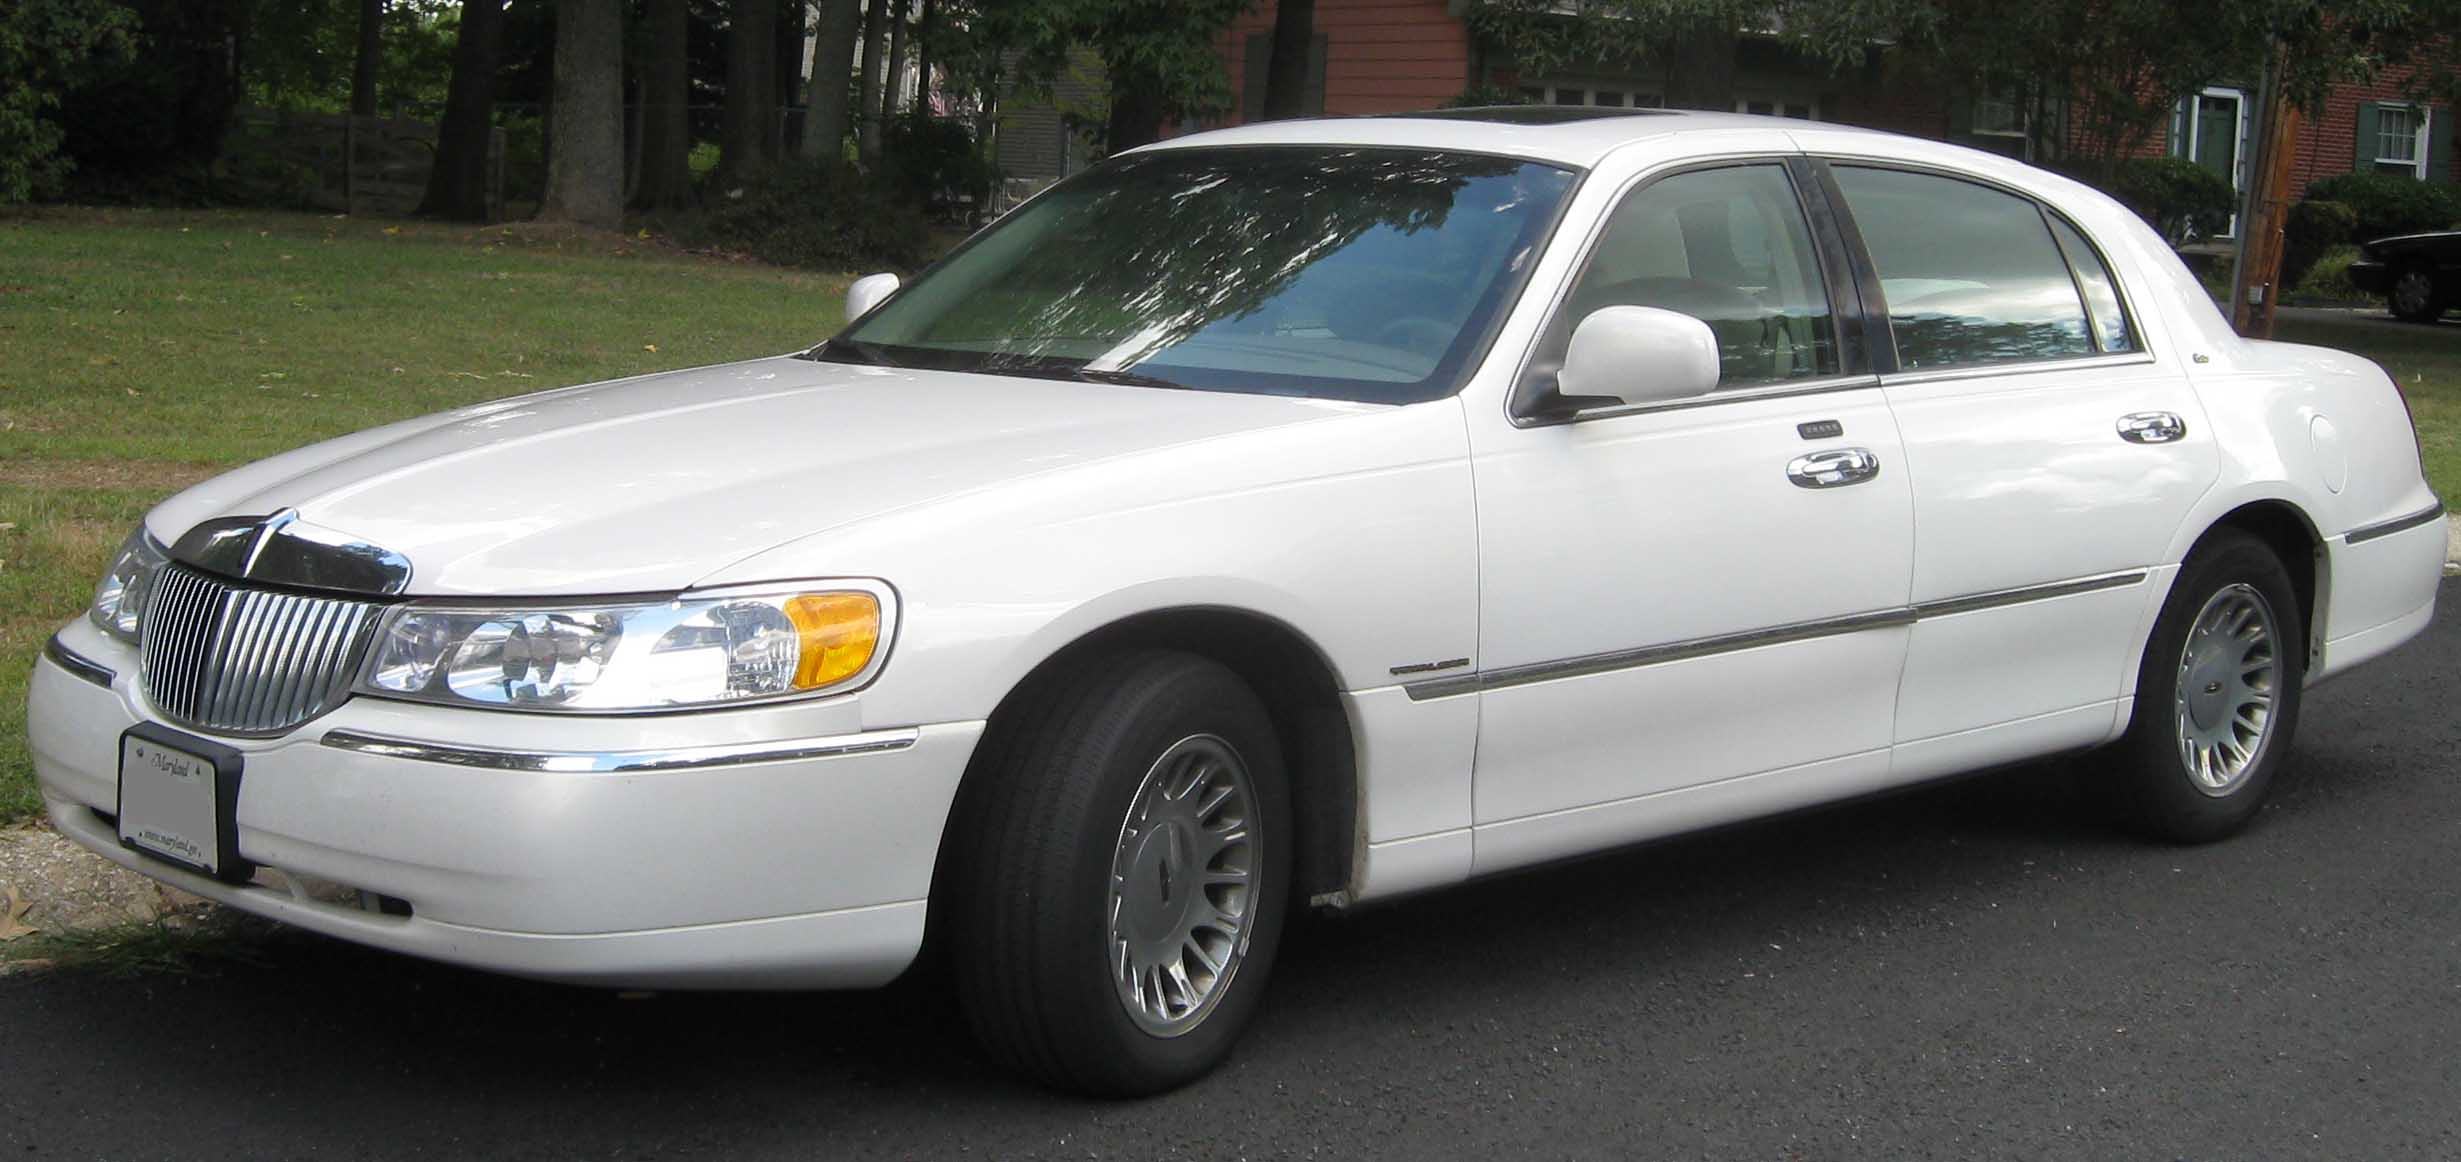 2004 Lincoln Town Car Image 10